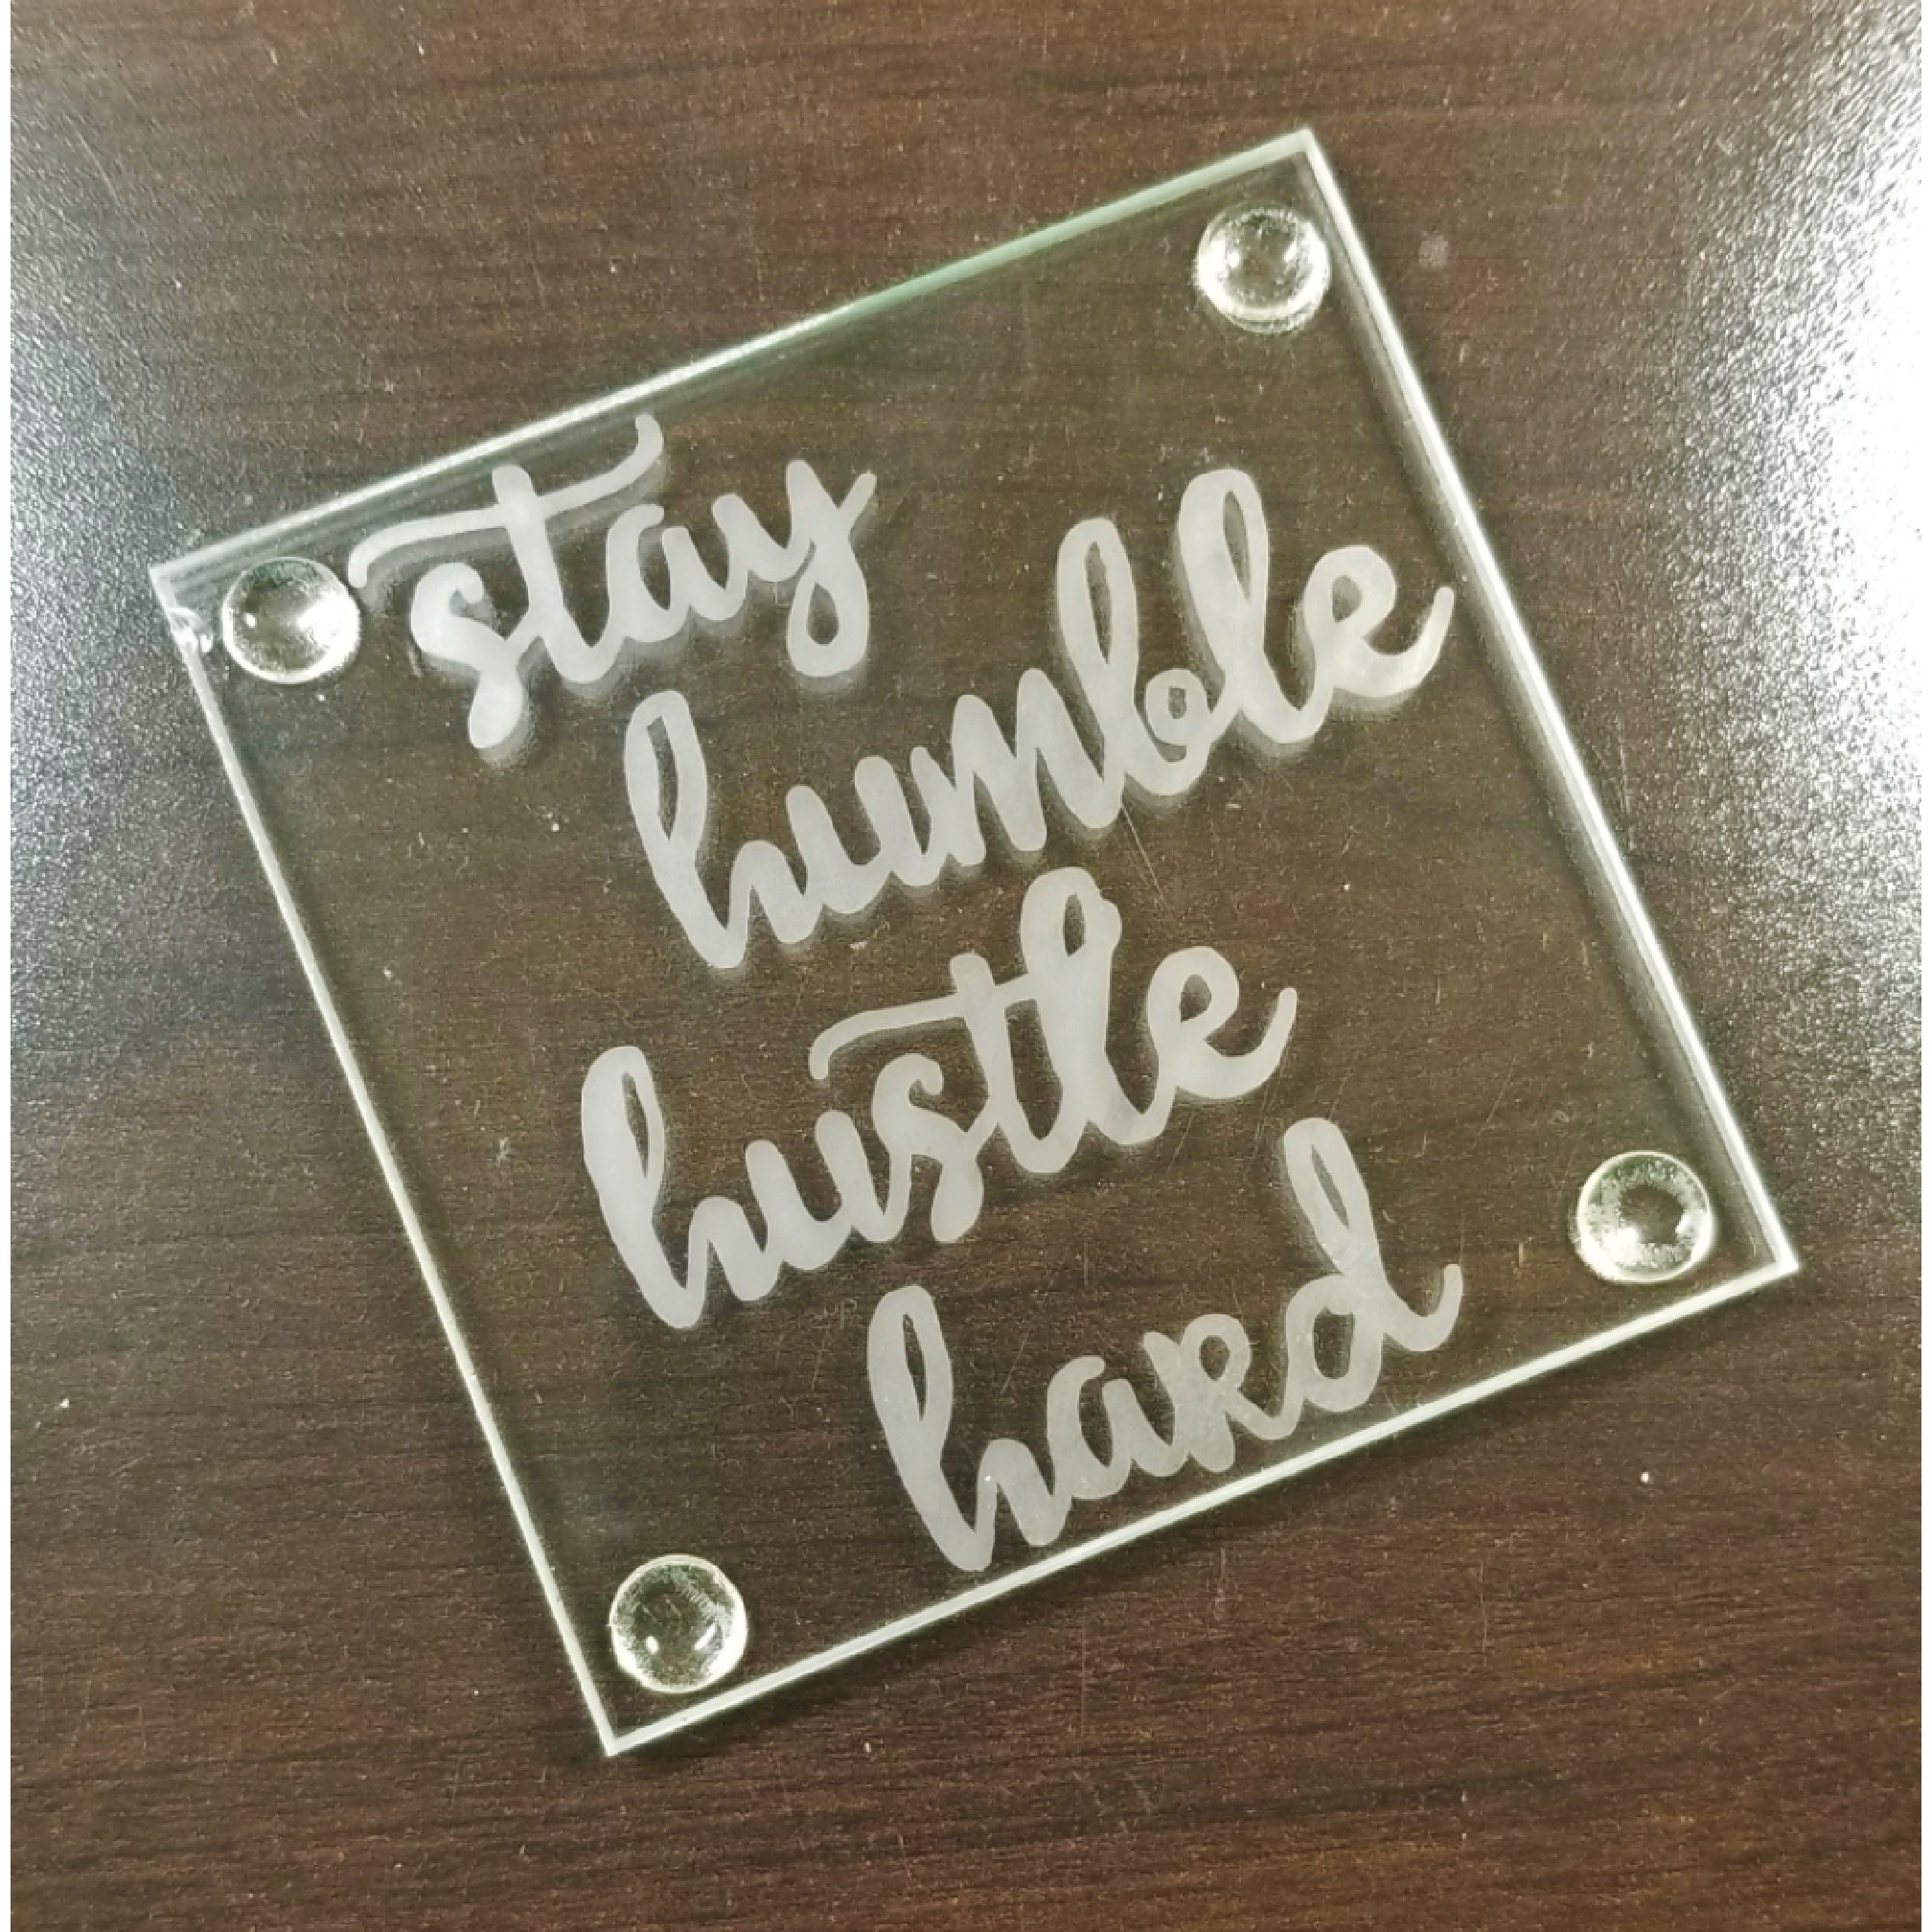 Square Etched Glass Coaster - Stay Humble Hustle Hard